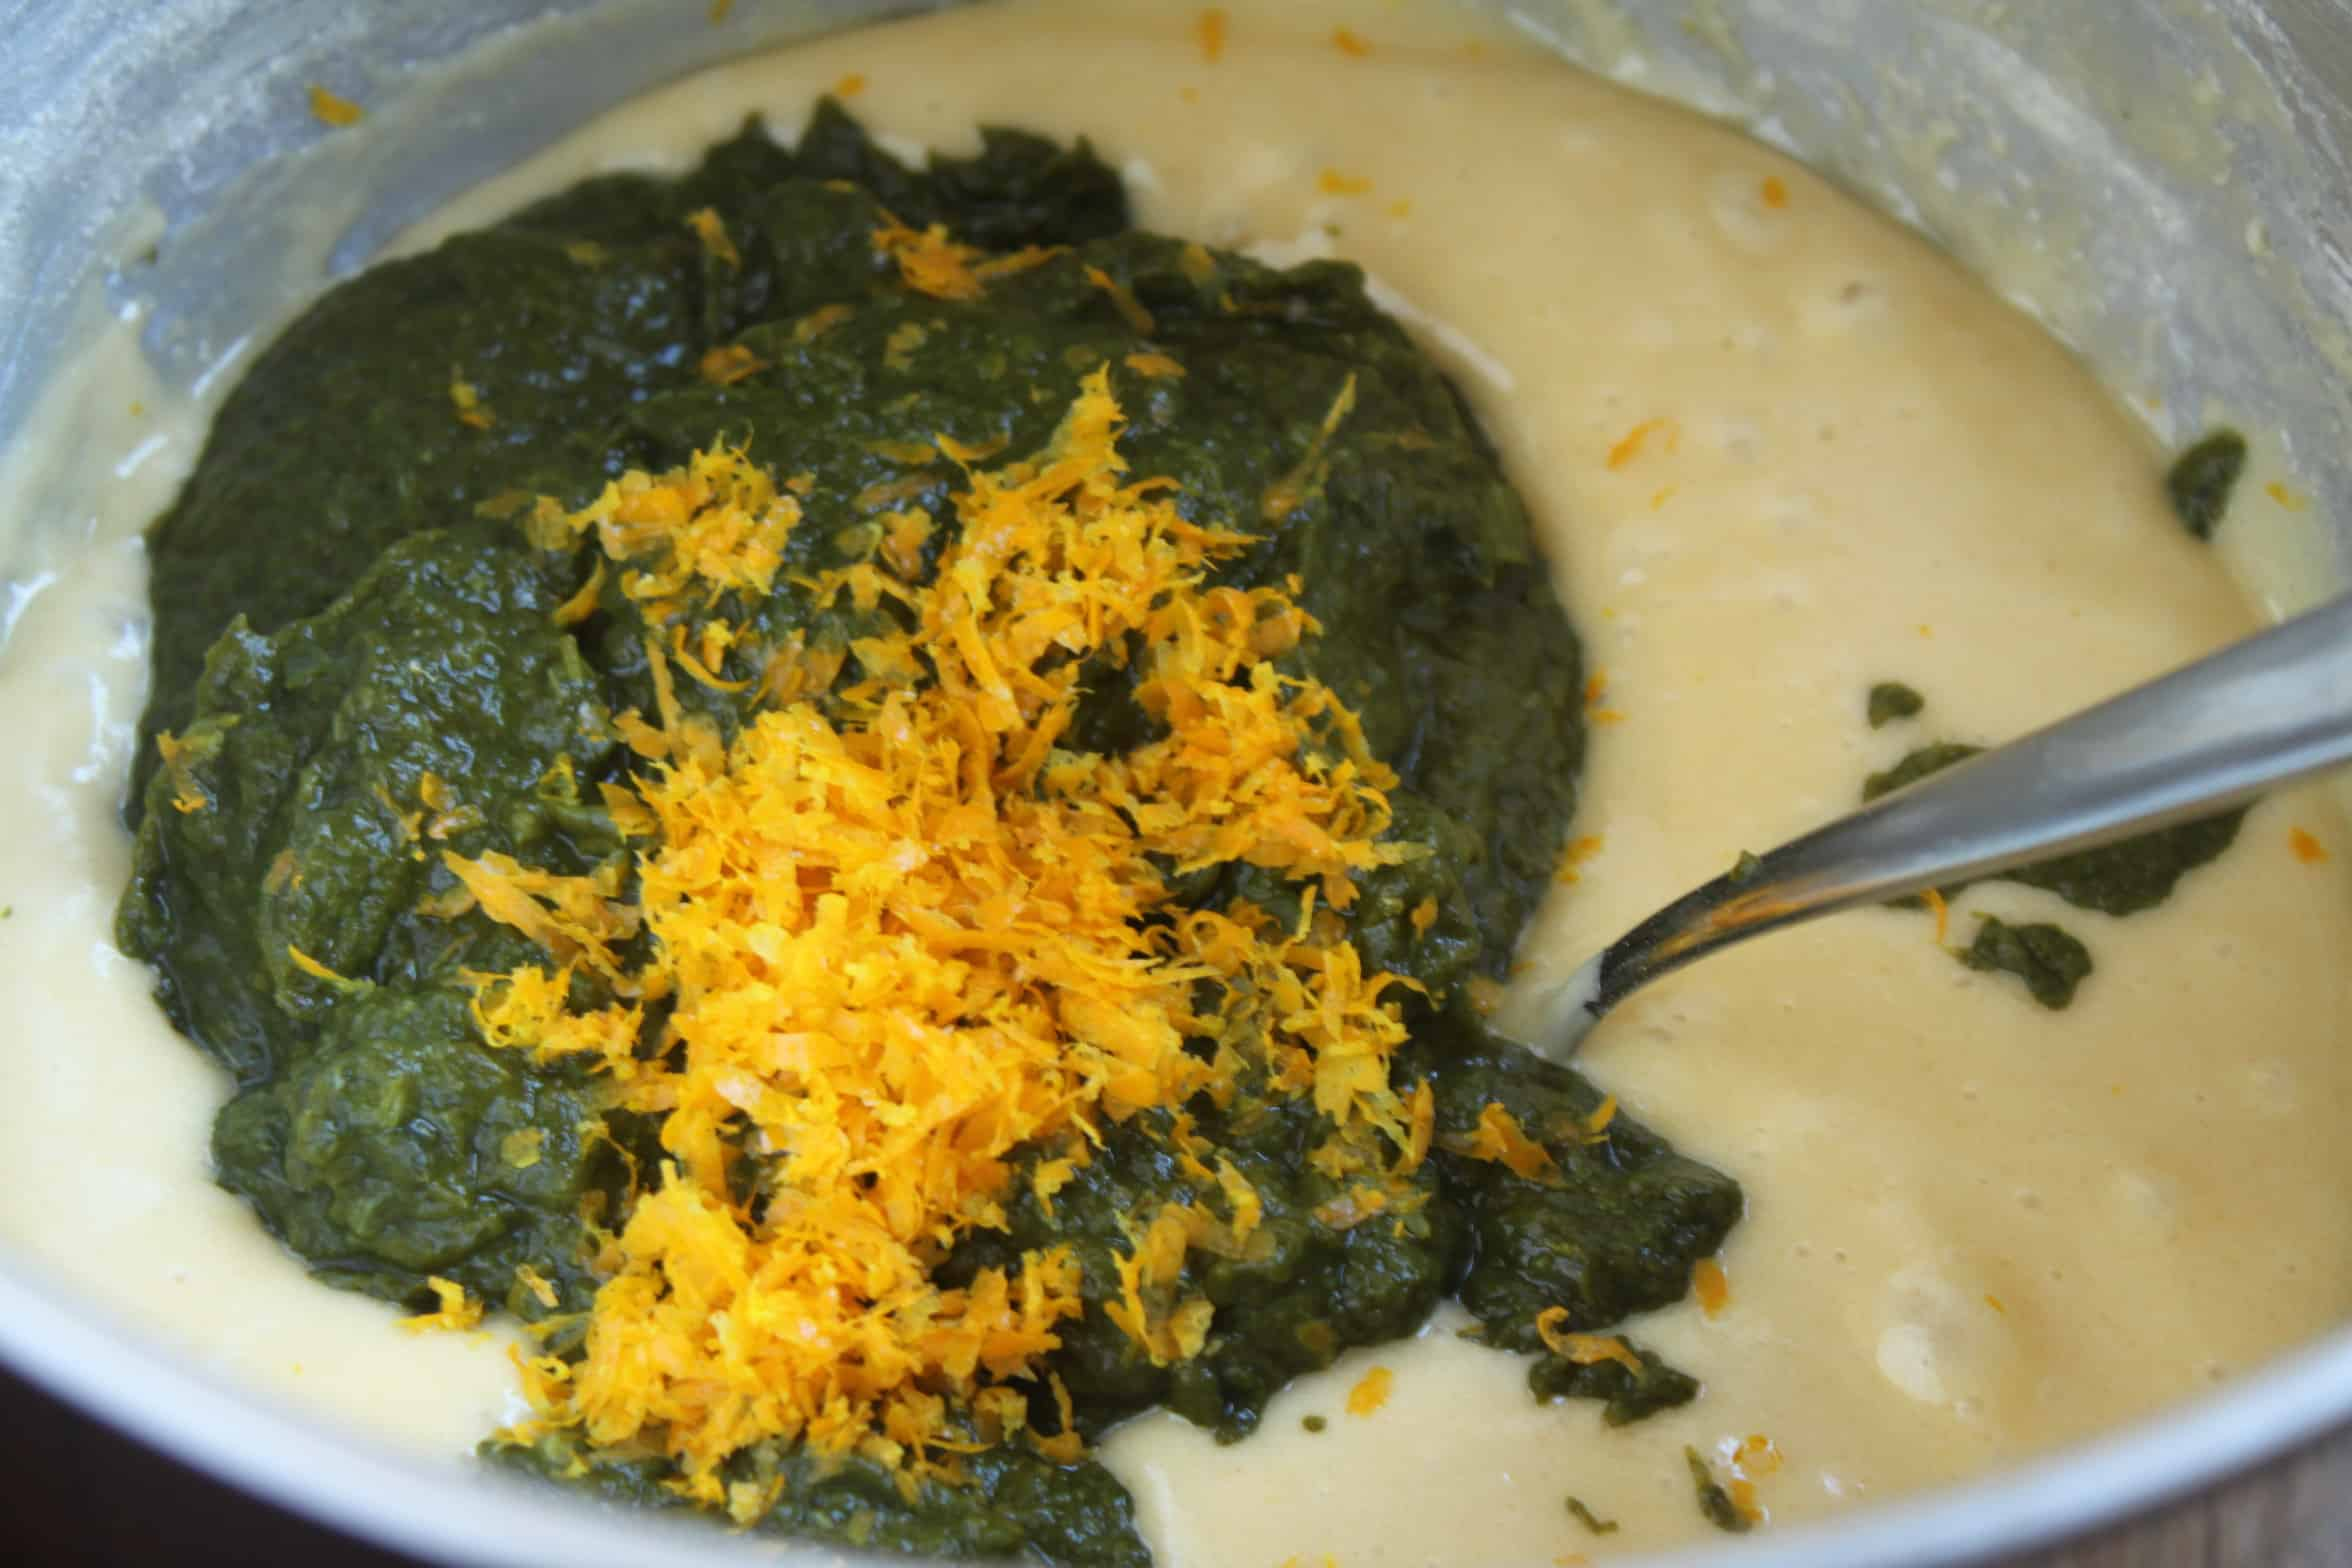 spinach puree and lemon zest added to batter